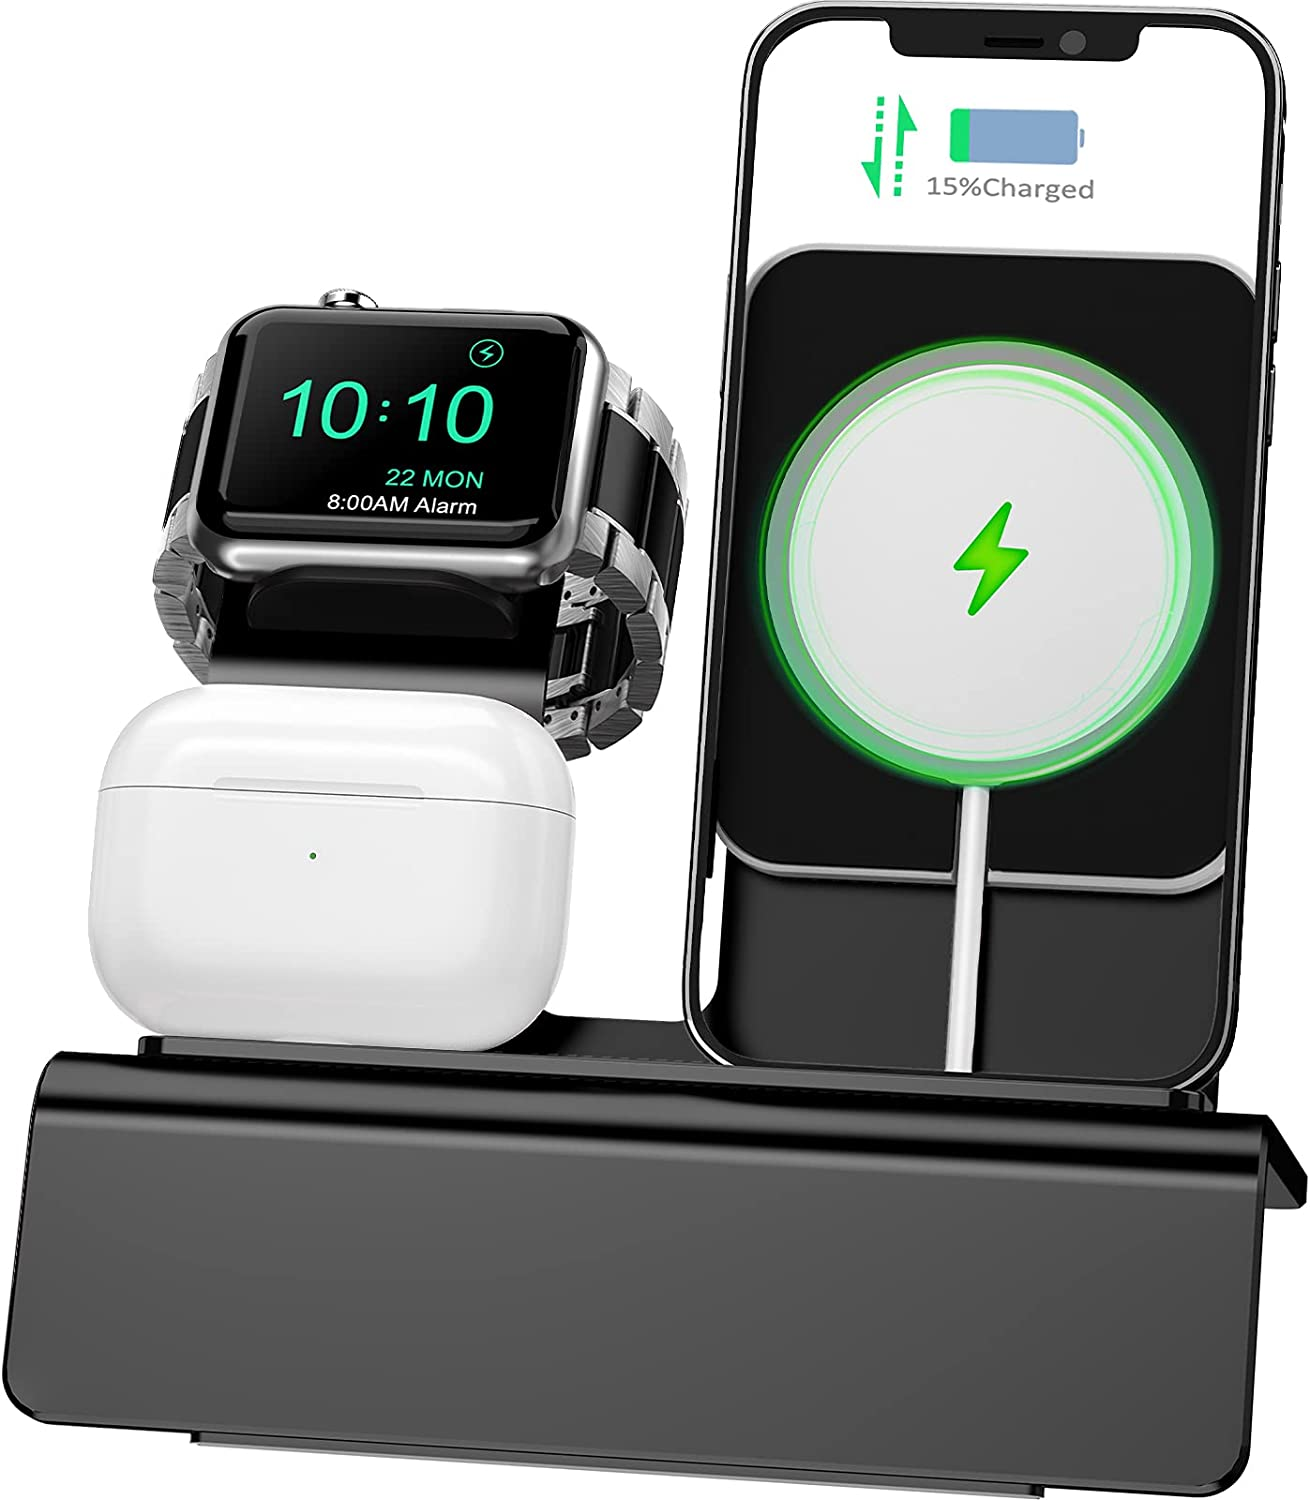 Yestan Charging Dock Compatible with Apple Watch Magsafe Stand, iWatch 6/SE/5/4/3/2/1, AirPods Pro and iPhone Series 12/11/Xs/X Max/XR/X/8/ 8P/7/7P/6S/6S Plus(Charger & Cables Needed) Black